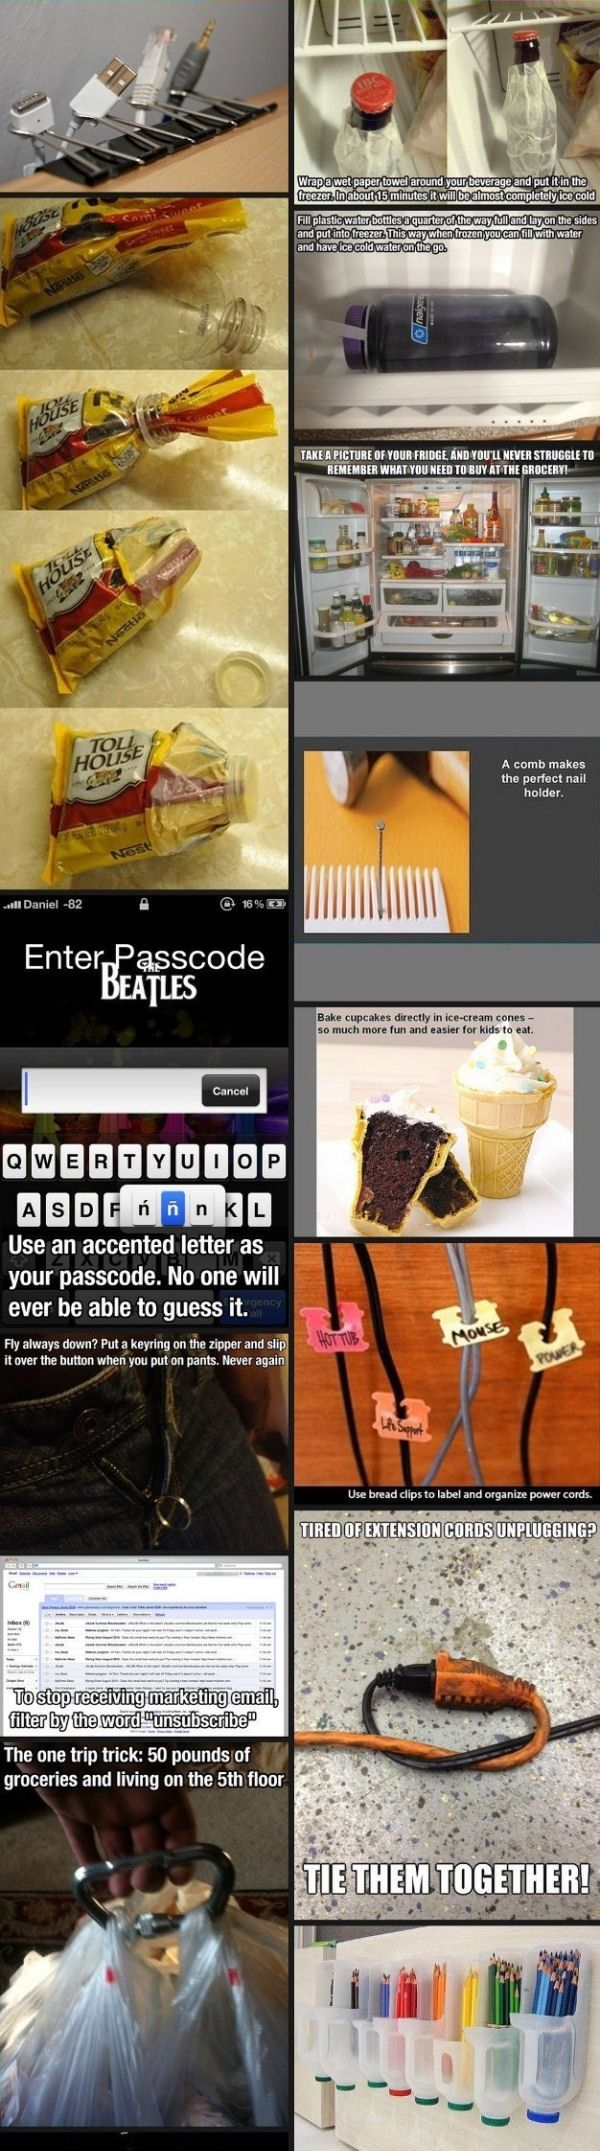 DIY Life Hacks Pictures, Photos, and Images for Facebook, Tumblr, Pinterest, and Twitter